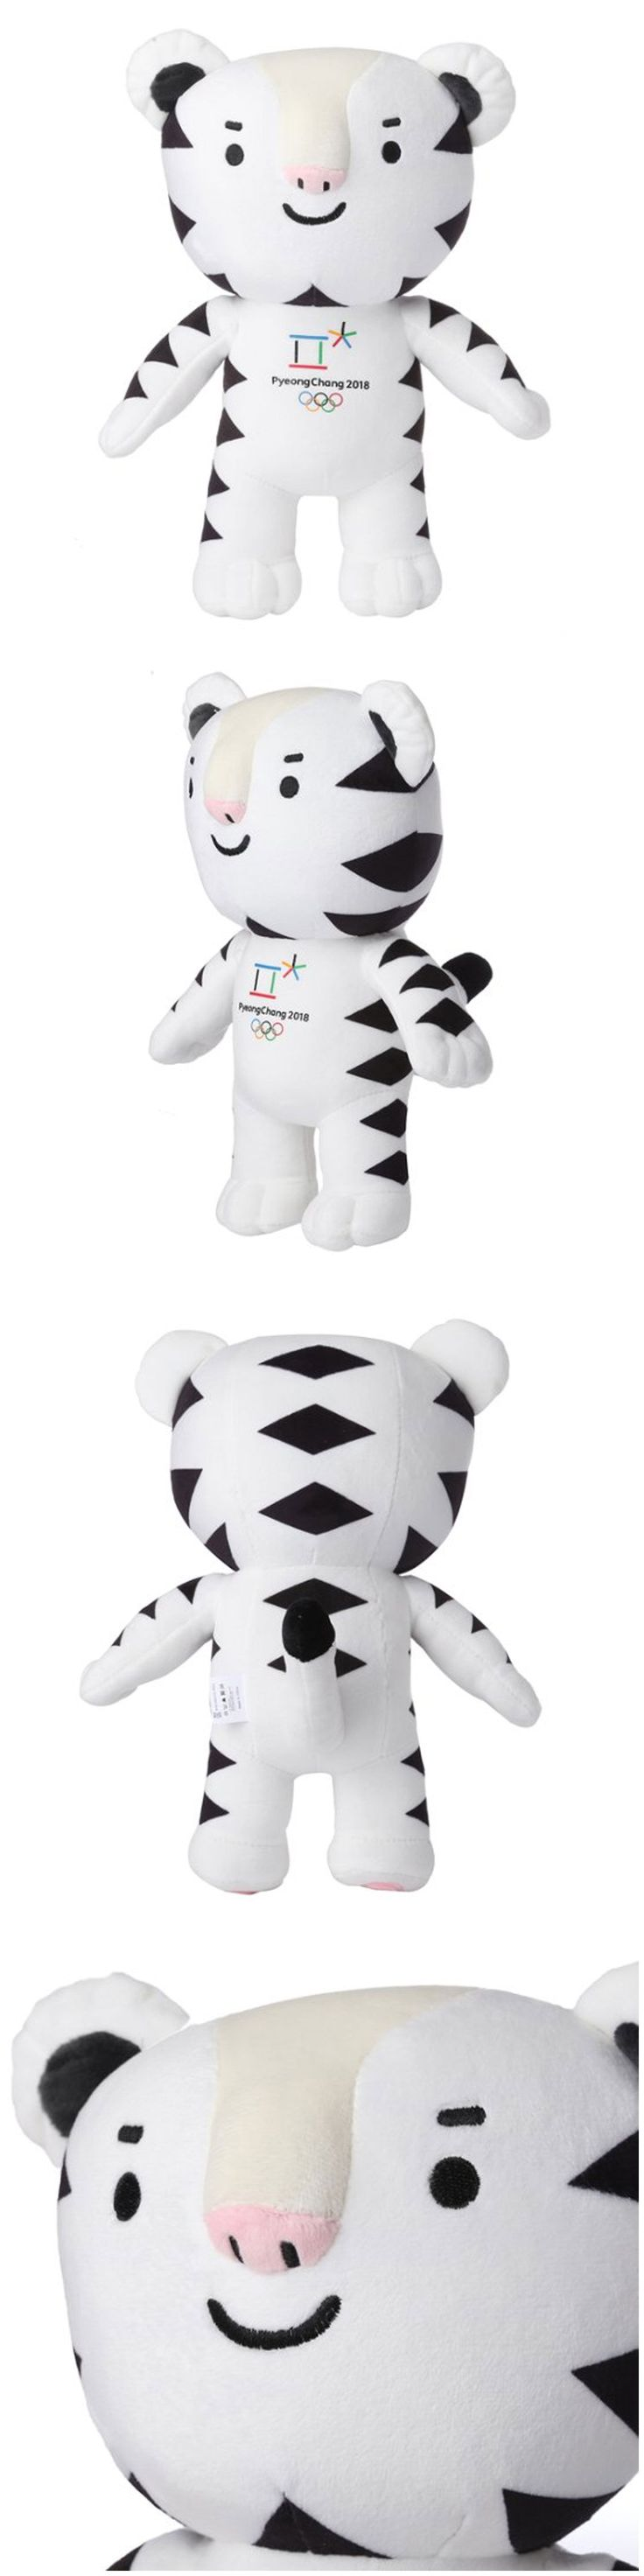 Olympics 27291: 2018 Korea Pyeongchang Winter Olympics Soohorang Mascot Doll White Tiger -> BUY IT NOW ONLY: $34.5 on eBay!